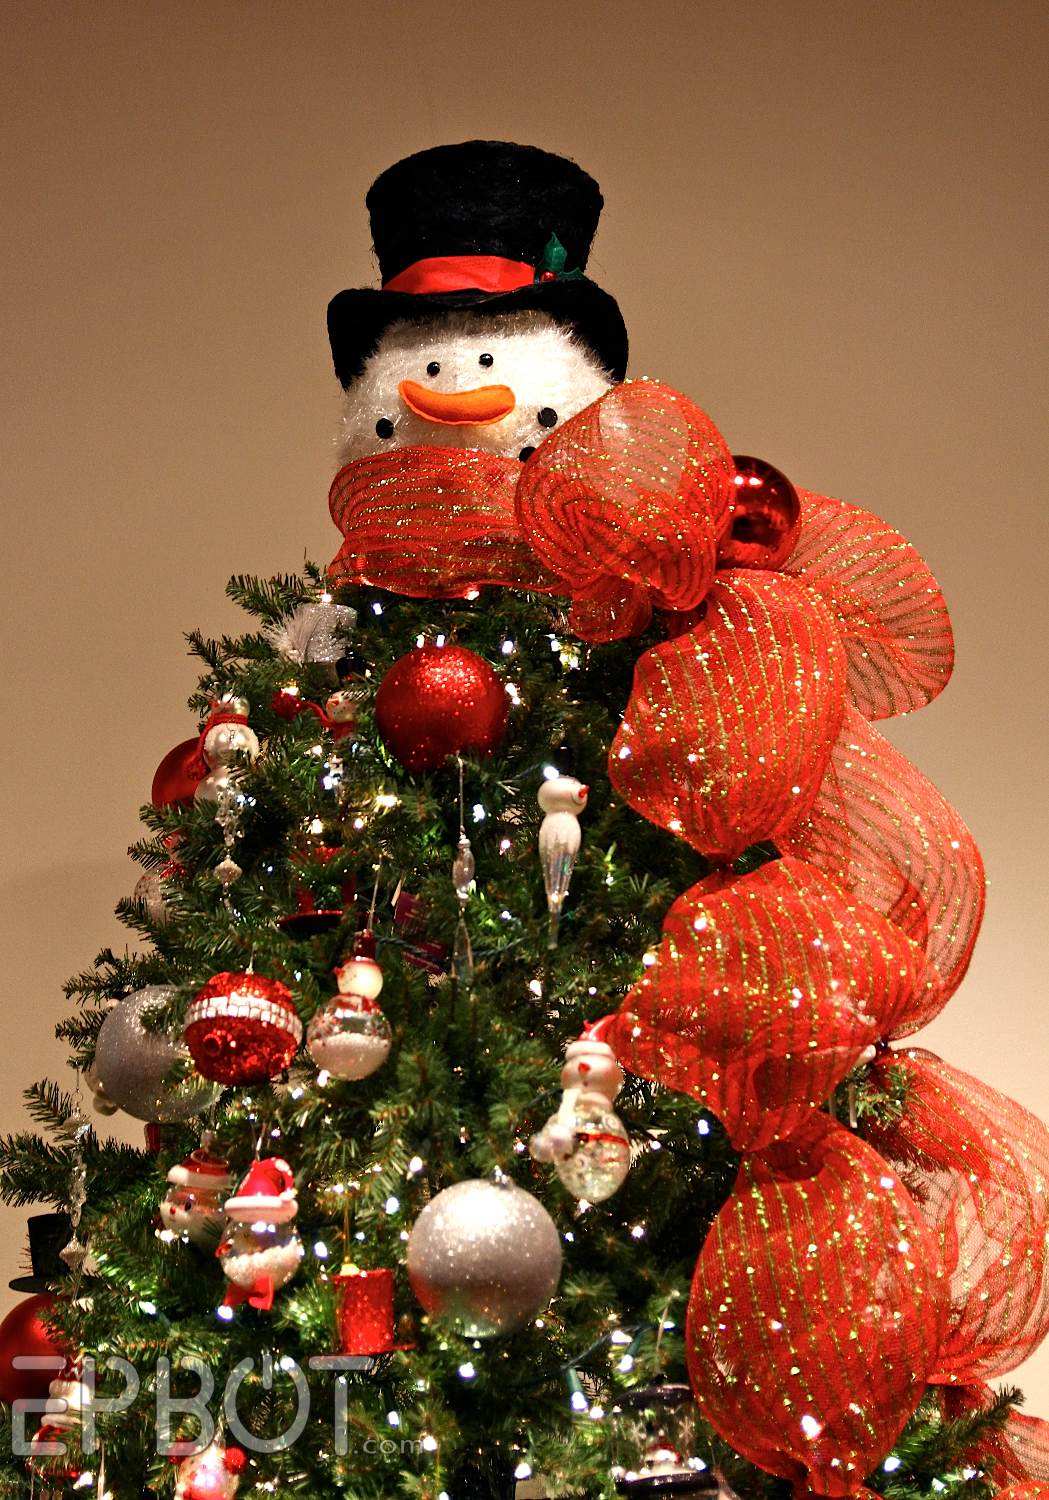 How to make a snowman christmas tree topper - But If You Re Going For Whimsy How About Turning The Tree Into A Snowman